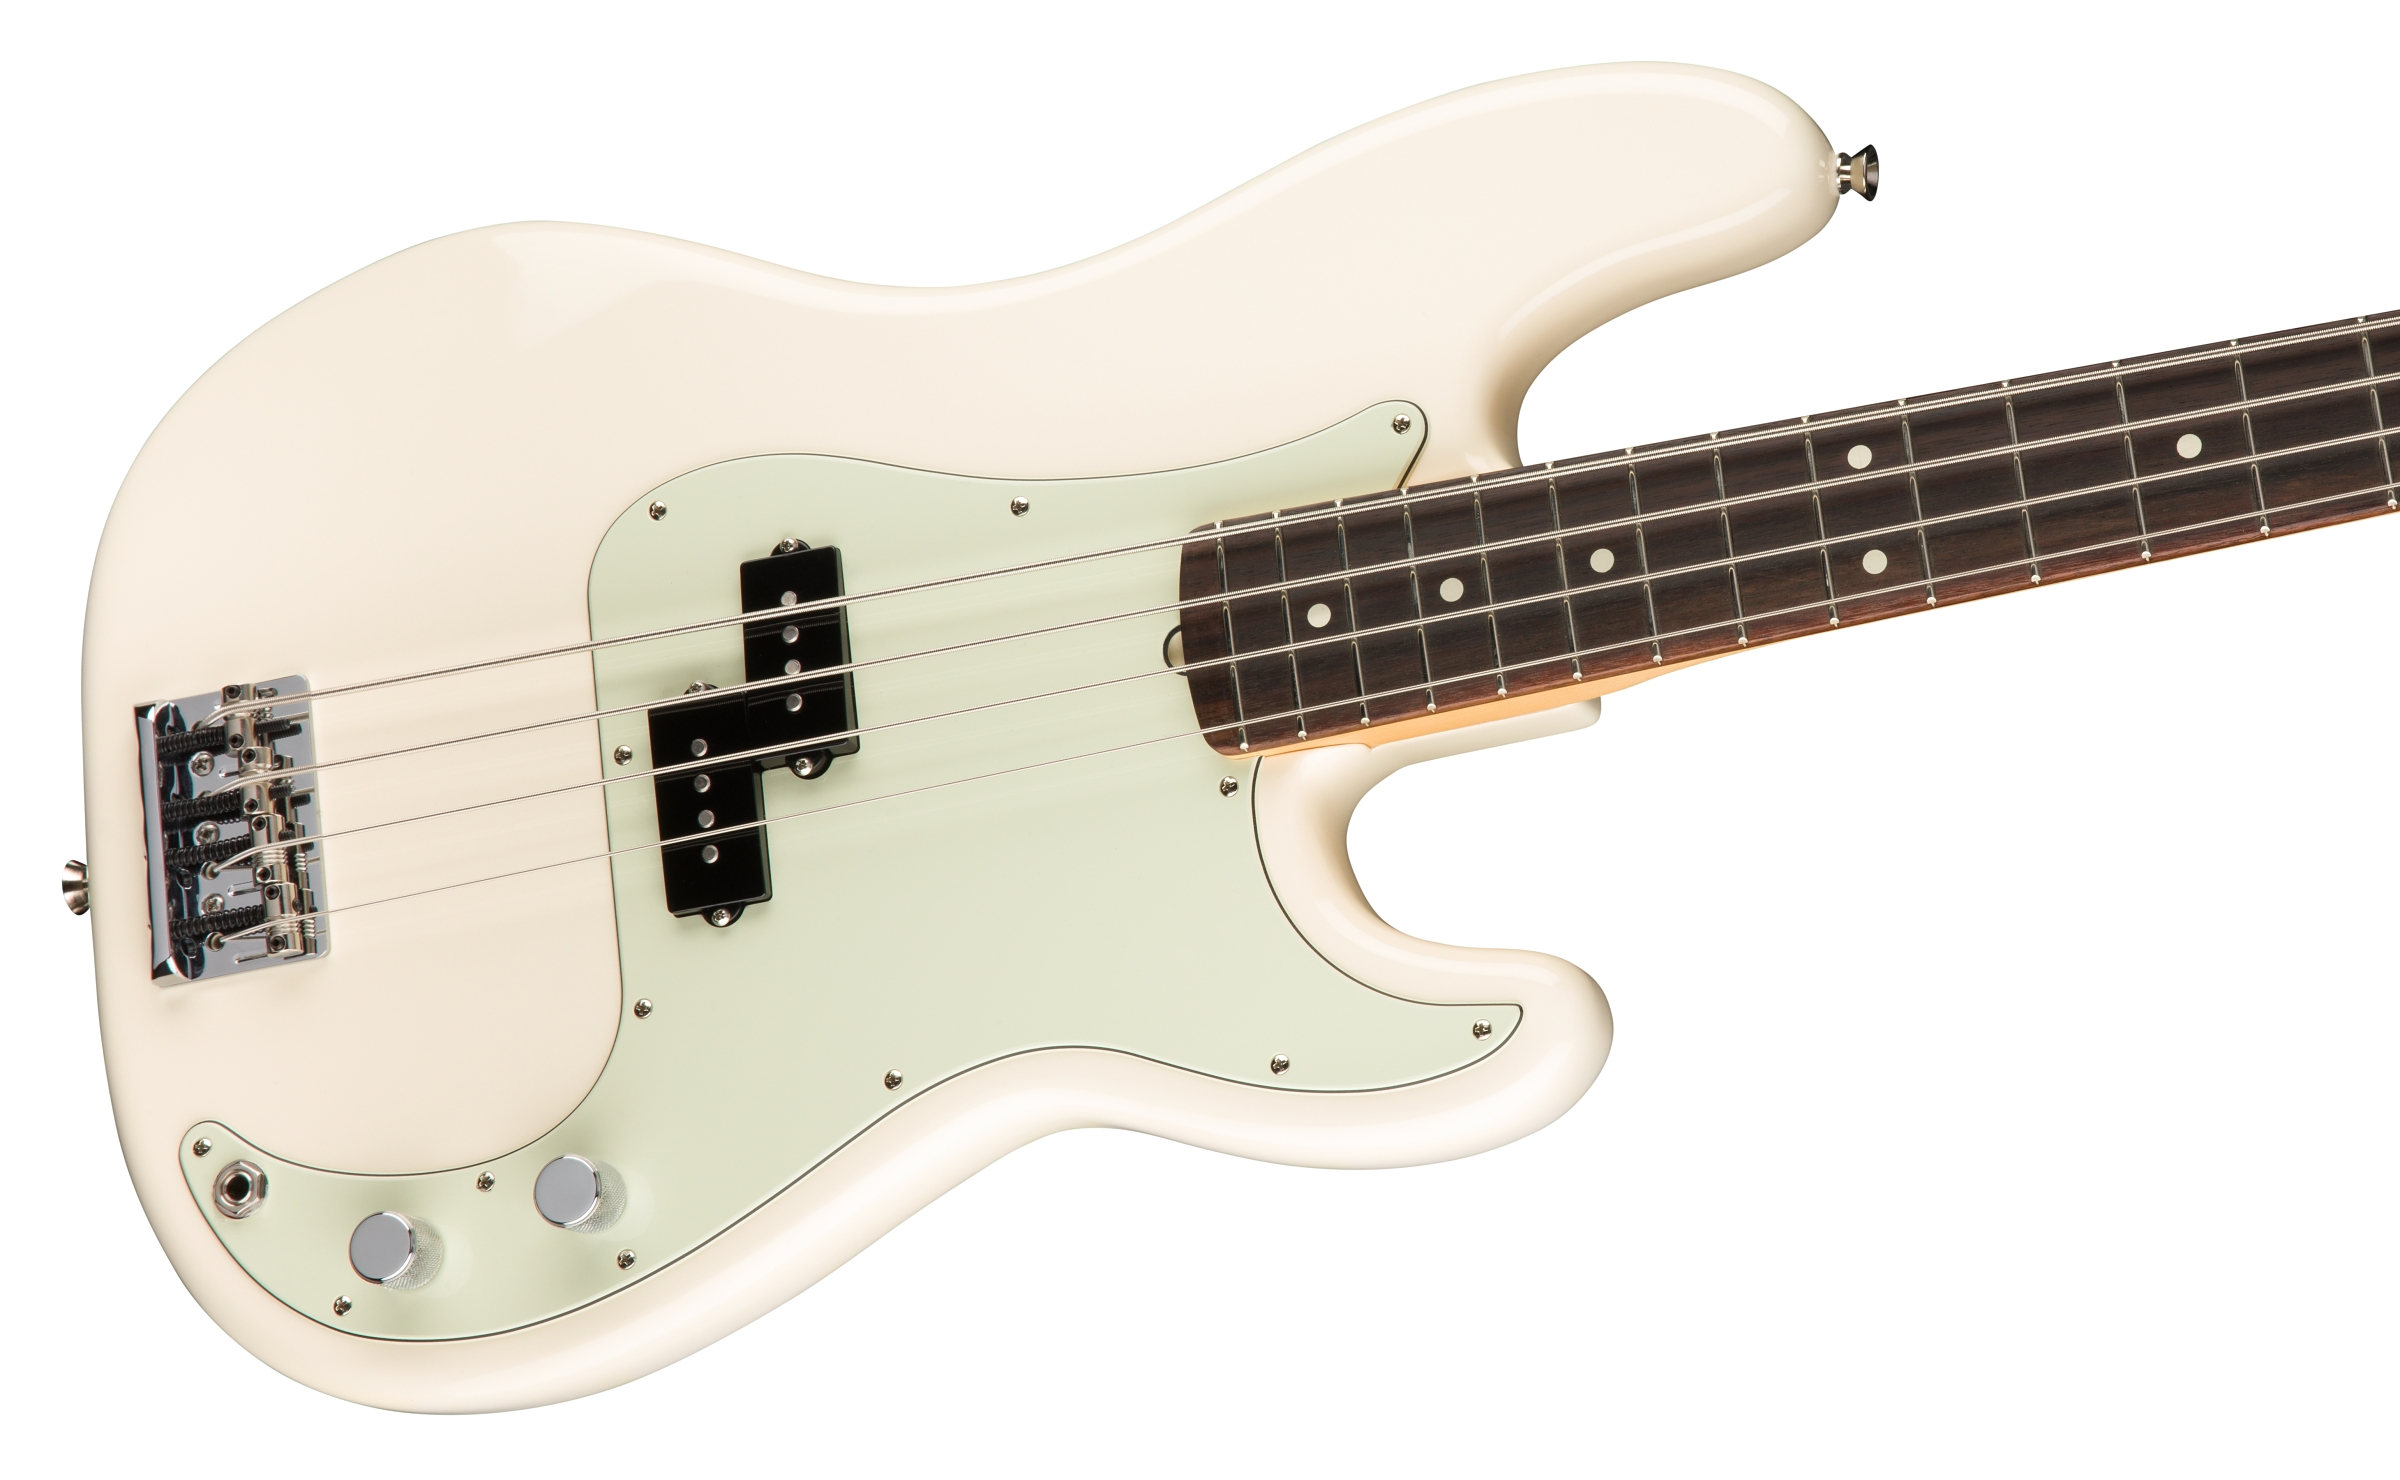 Fender American Pro Precision Bass 174 Rosewood Fingerboard